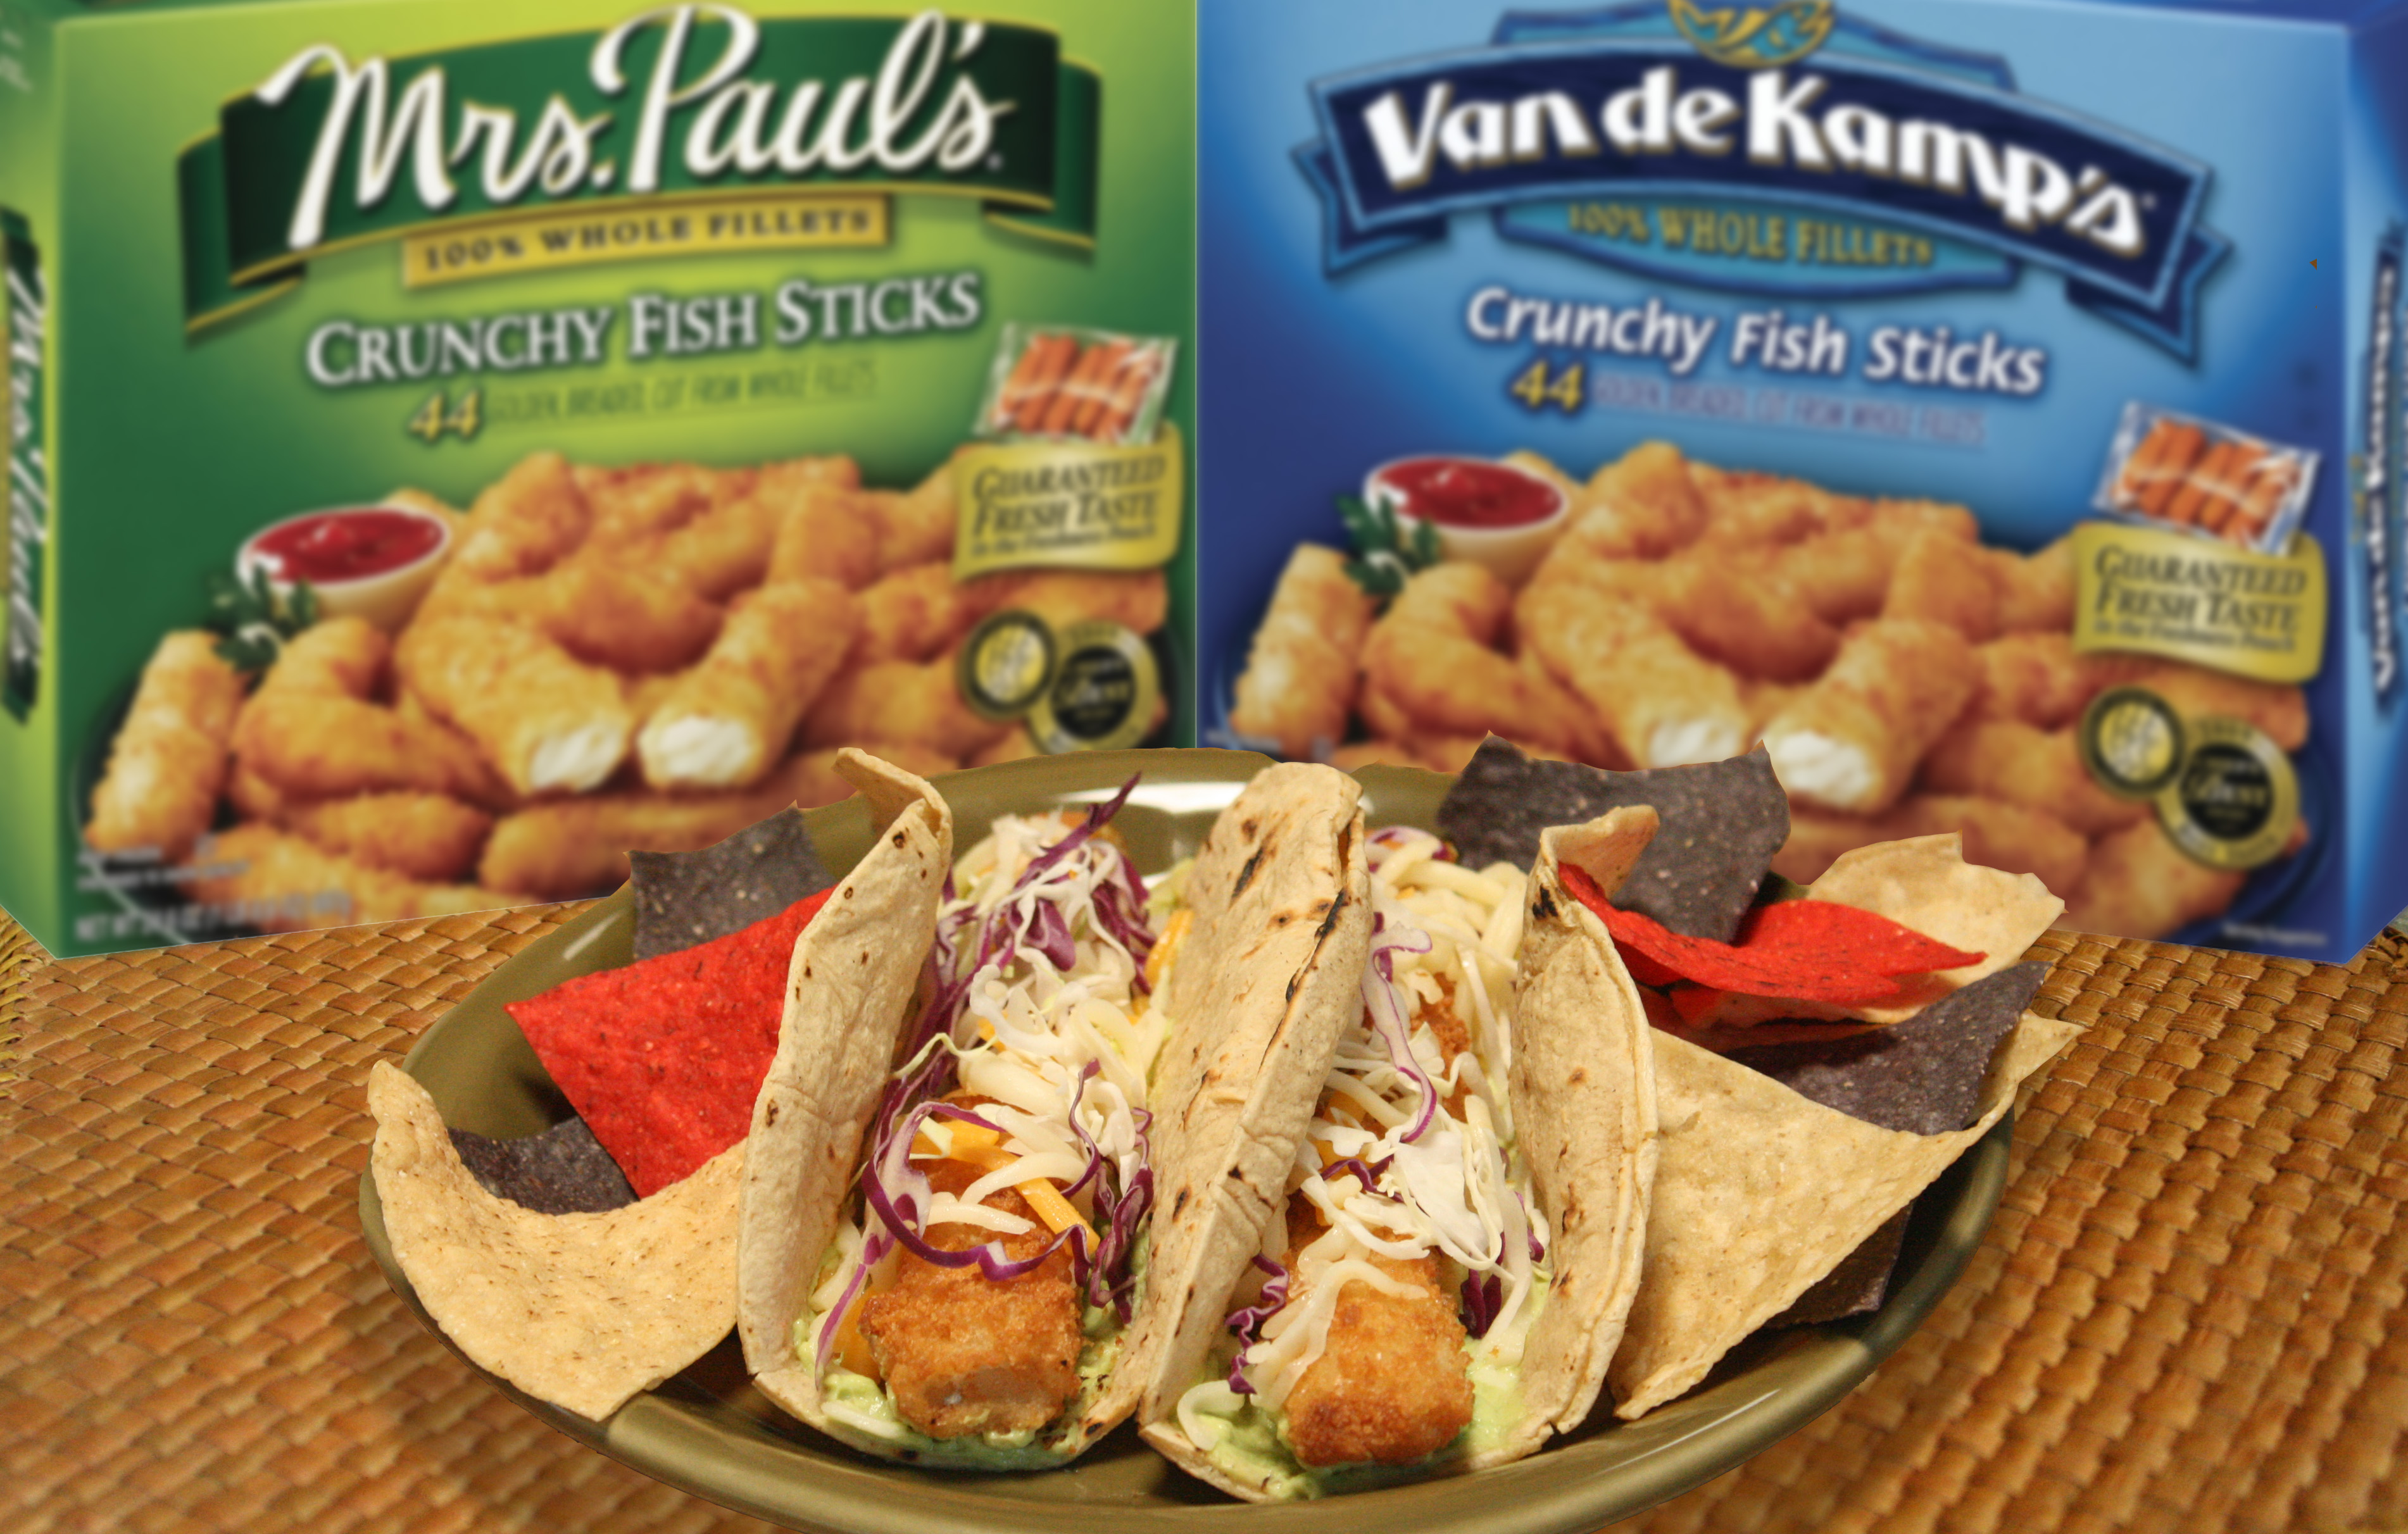 Recipes for easter lent after from van de kamp 39 s for Fish stick tacos